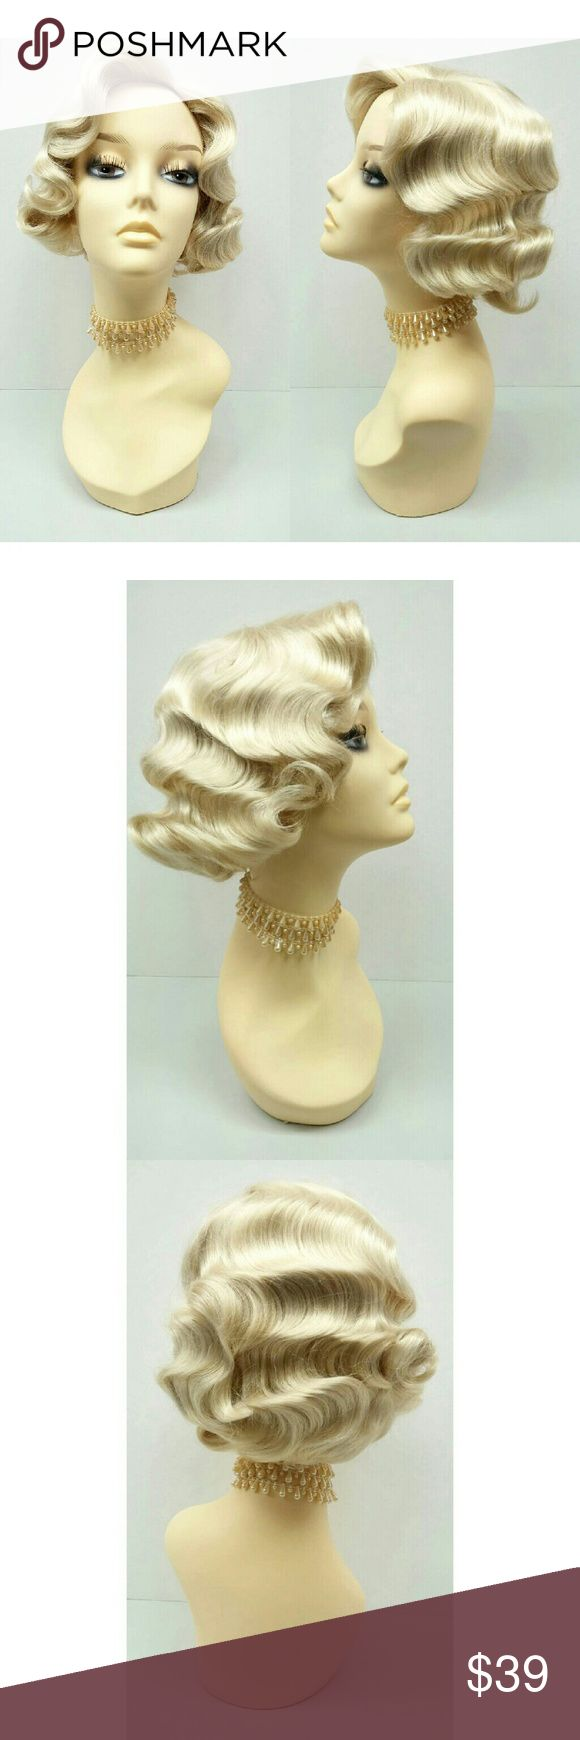 """Blonde finger waves Gatsby flapper style 1920s wig NOTE: This wig is ready to wear and intended for costume purposes only. Do not brush, comb, shake out, or run fingers through the hair as it will separate the waves.  Retro finger waves and curls in a chic short style. Synthetic. *Not heat resistant, do not use heating tools.  Color: Blonde (613) Circumference: Adjustable 21"""" - 22"""" inches Materials: Synthetic fibers  Wig prices are firm. Accessories Hair Accessories"""